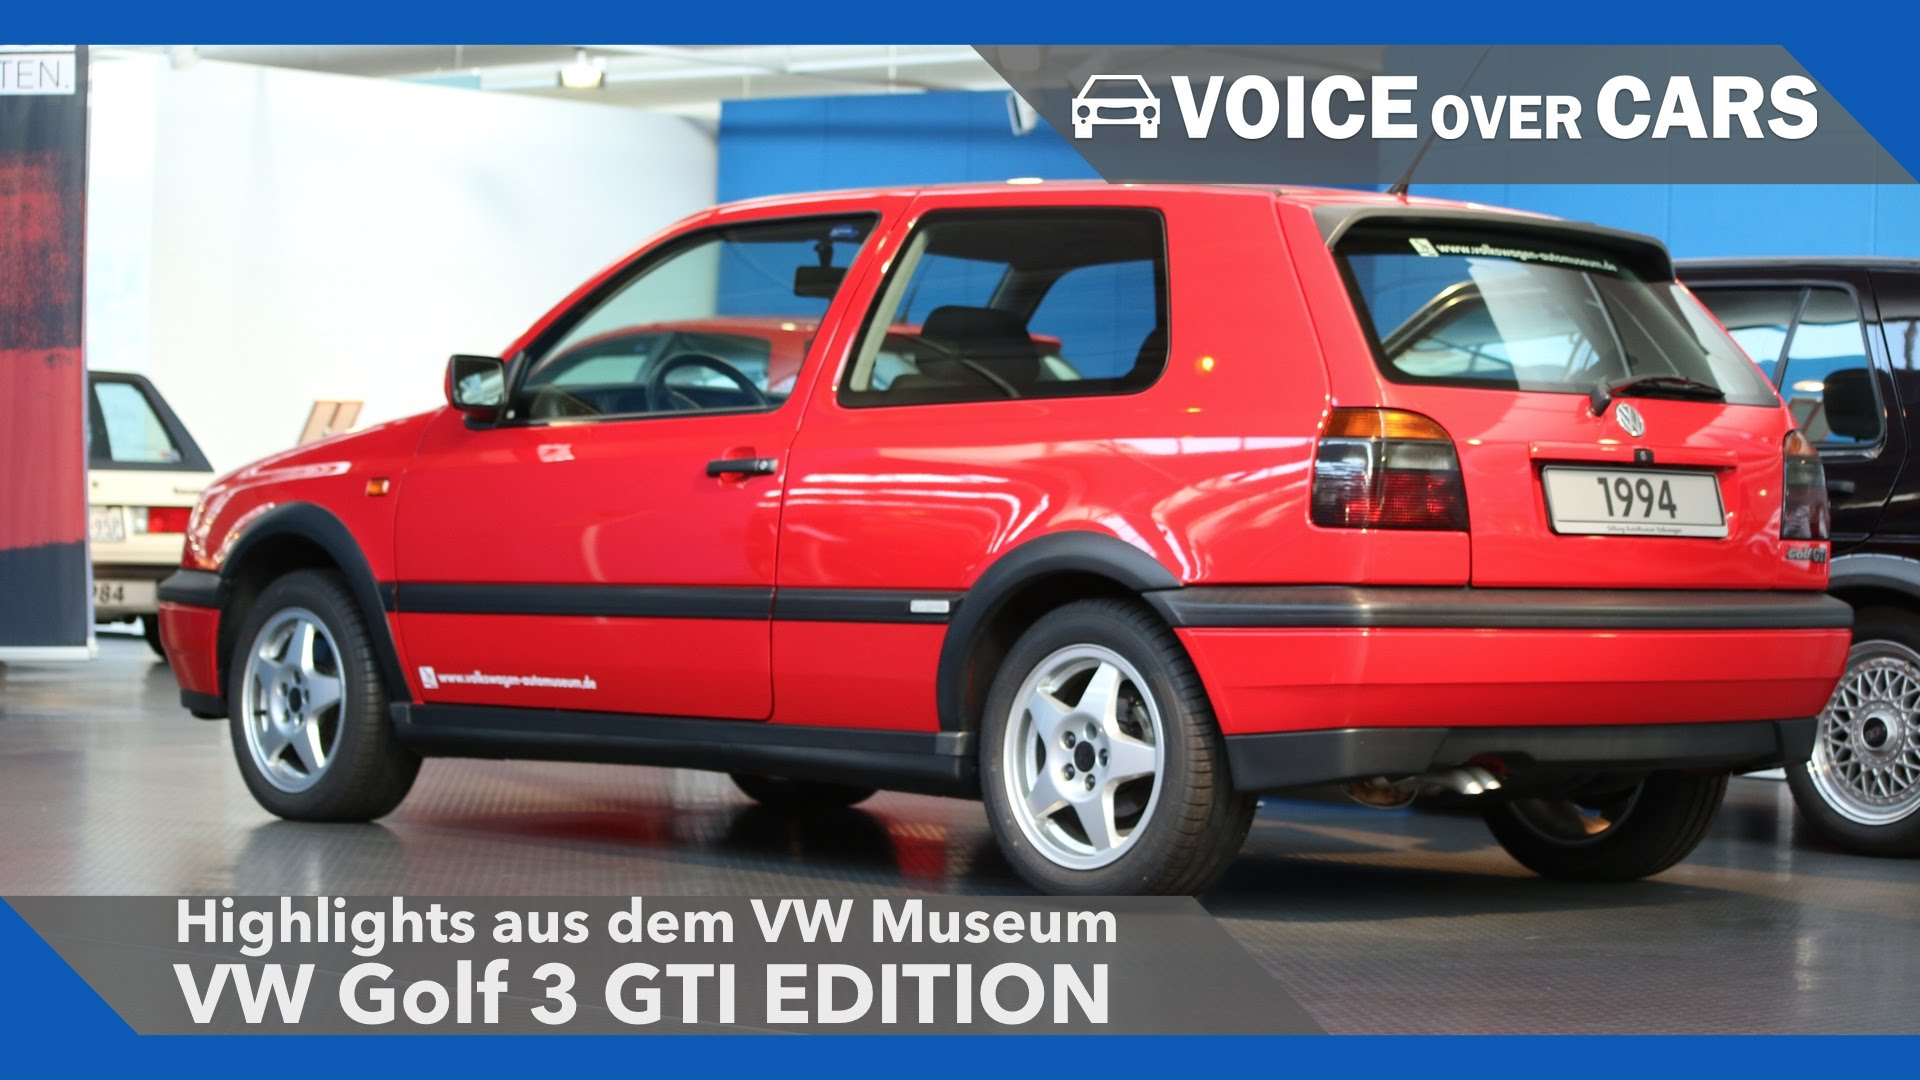 Vw Golf 3 Gti Edition Vw Museum Highlights 2016 Voice